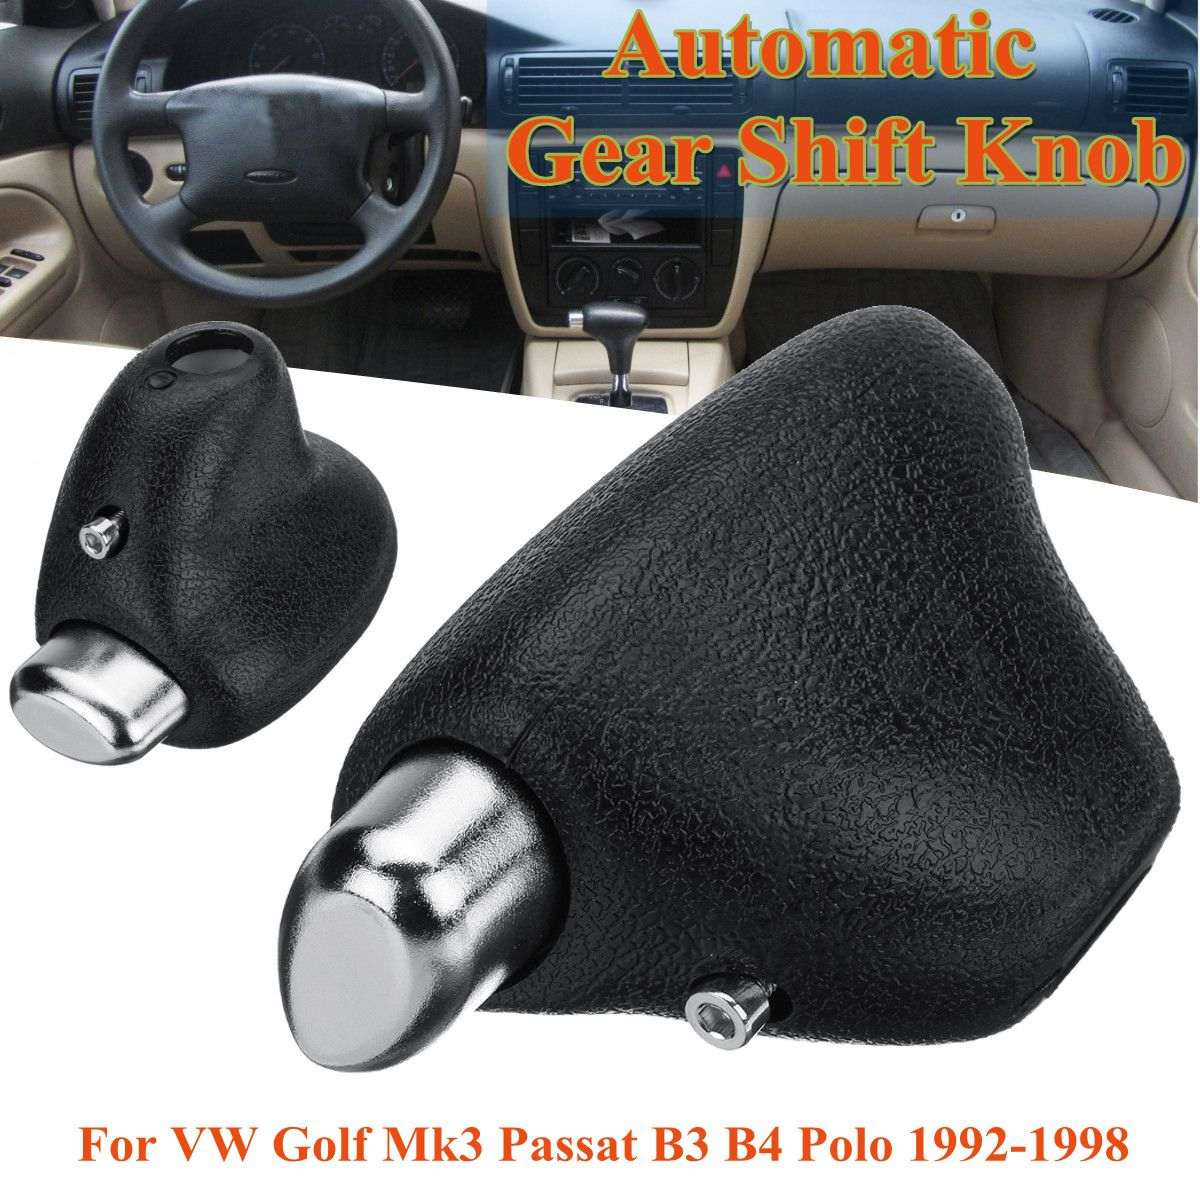 Car Automatic <font><b>Gear</b></font> Shift <font><b>Knob</b></font> 114721755 357713139A For <font><b>VW</b></font>/Volkswagen <font><b>Golf</b></font> <font><b>Mk3</b></font> Passat B3 B4 Polo 1992-1998 image